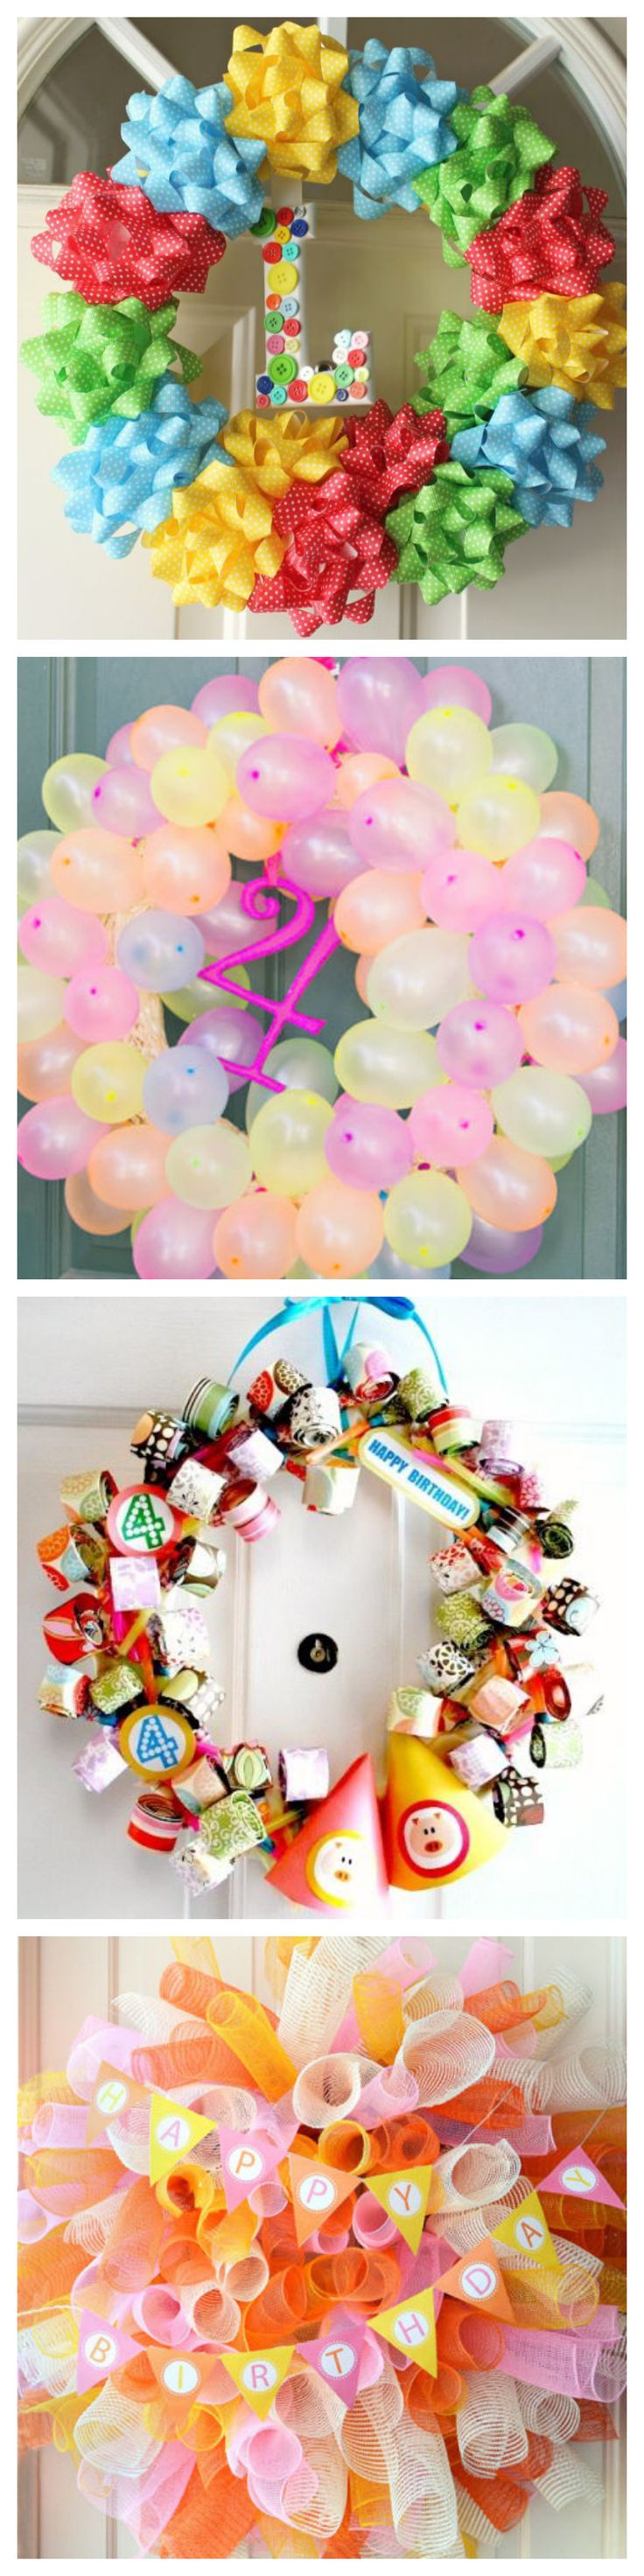 craft present ideas best 25 birthday presents ideas on 1616